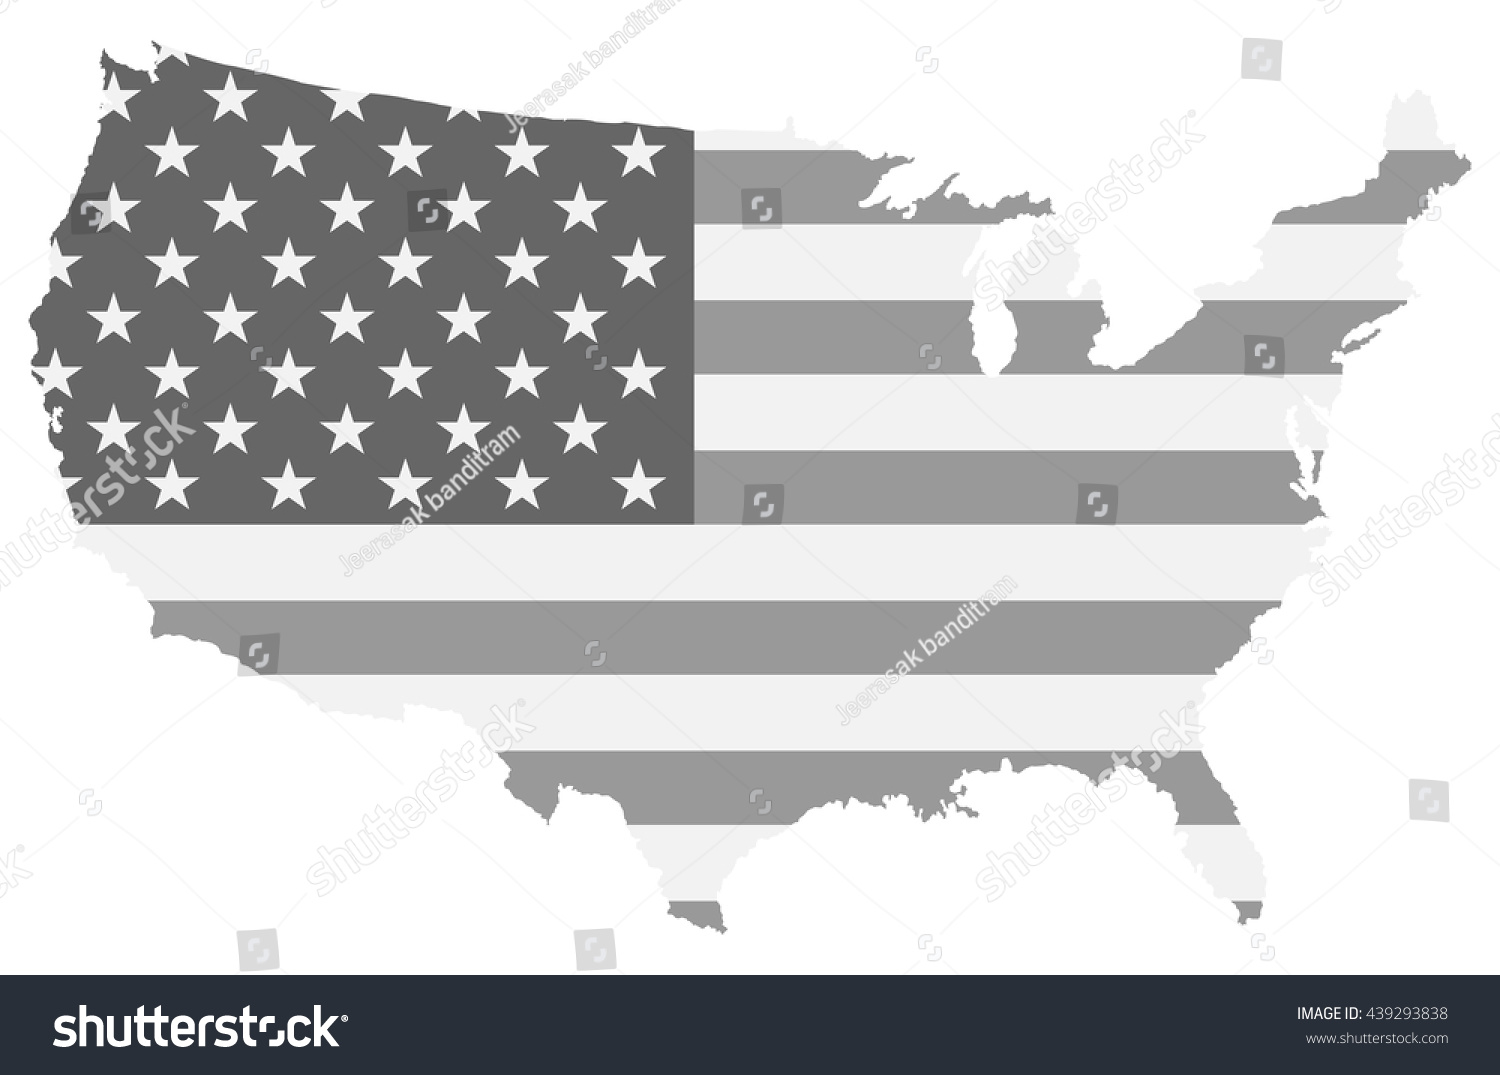 Physical Map Of The United States Black And White US Outline Wall - Black and white usa map